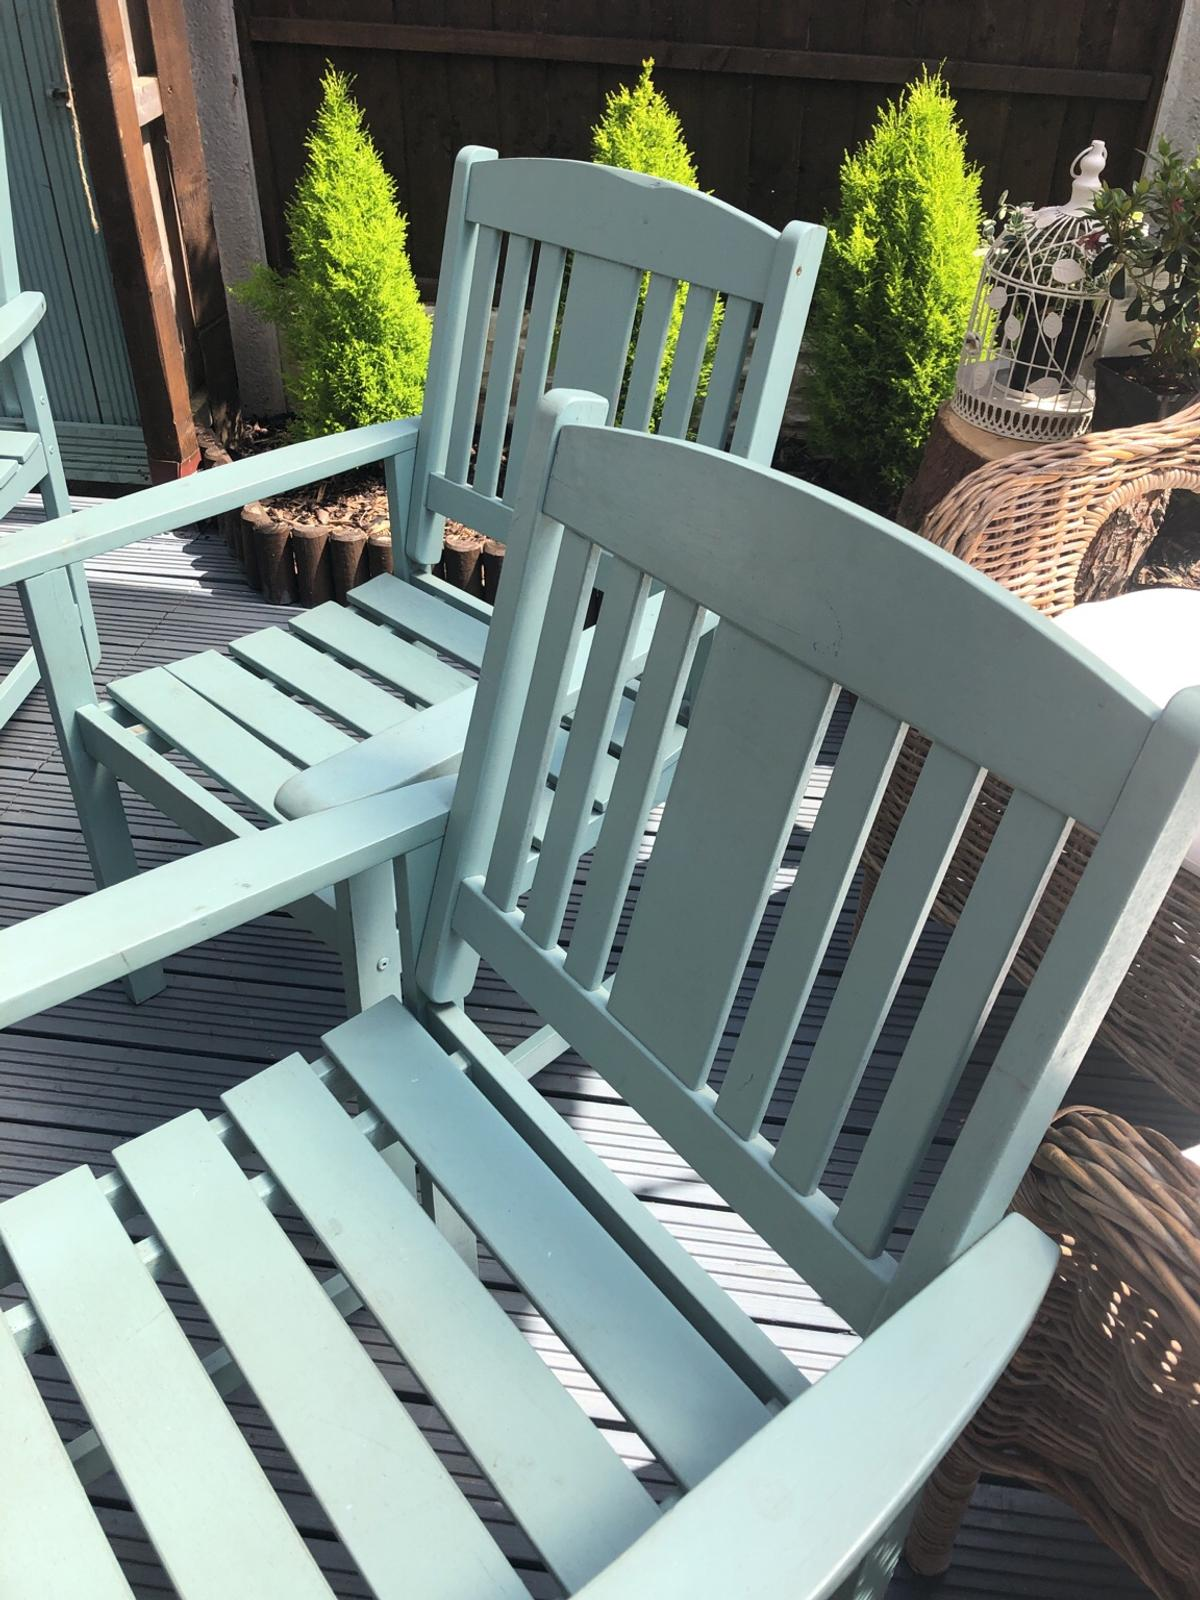 Outstanding Garden Chairs In Coventry For 30 00 For Sale Shpock Theyellowbook Wood Chair Design Ideas Theyellowbookinfo